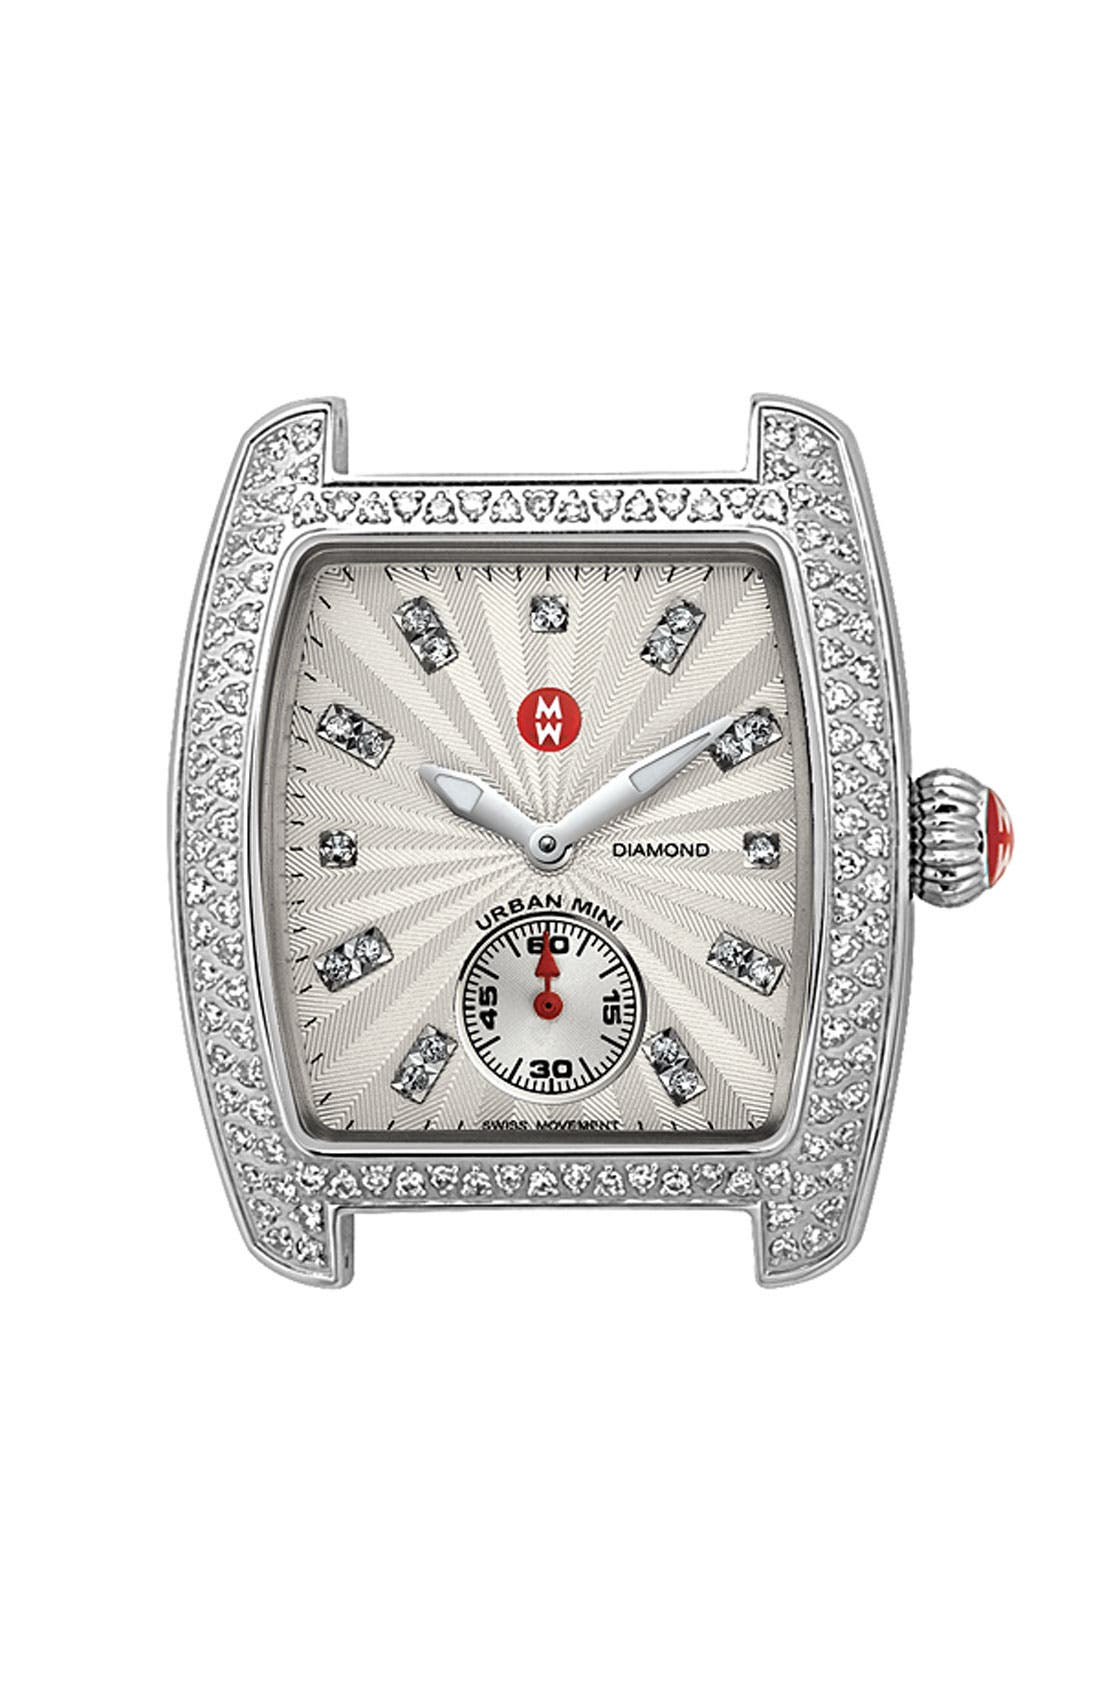 Alternate Image 1 Selected - MICHELE 'Urban Mini Diamond' Diamond Dial Watch Case, 29mm x 30mm